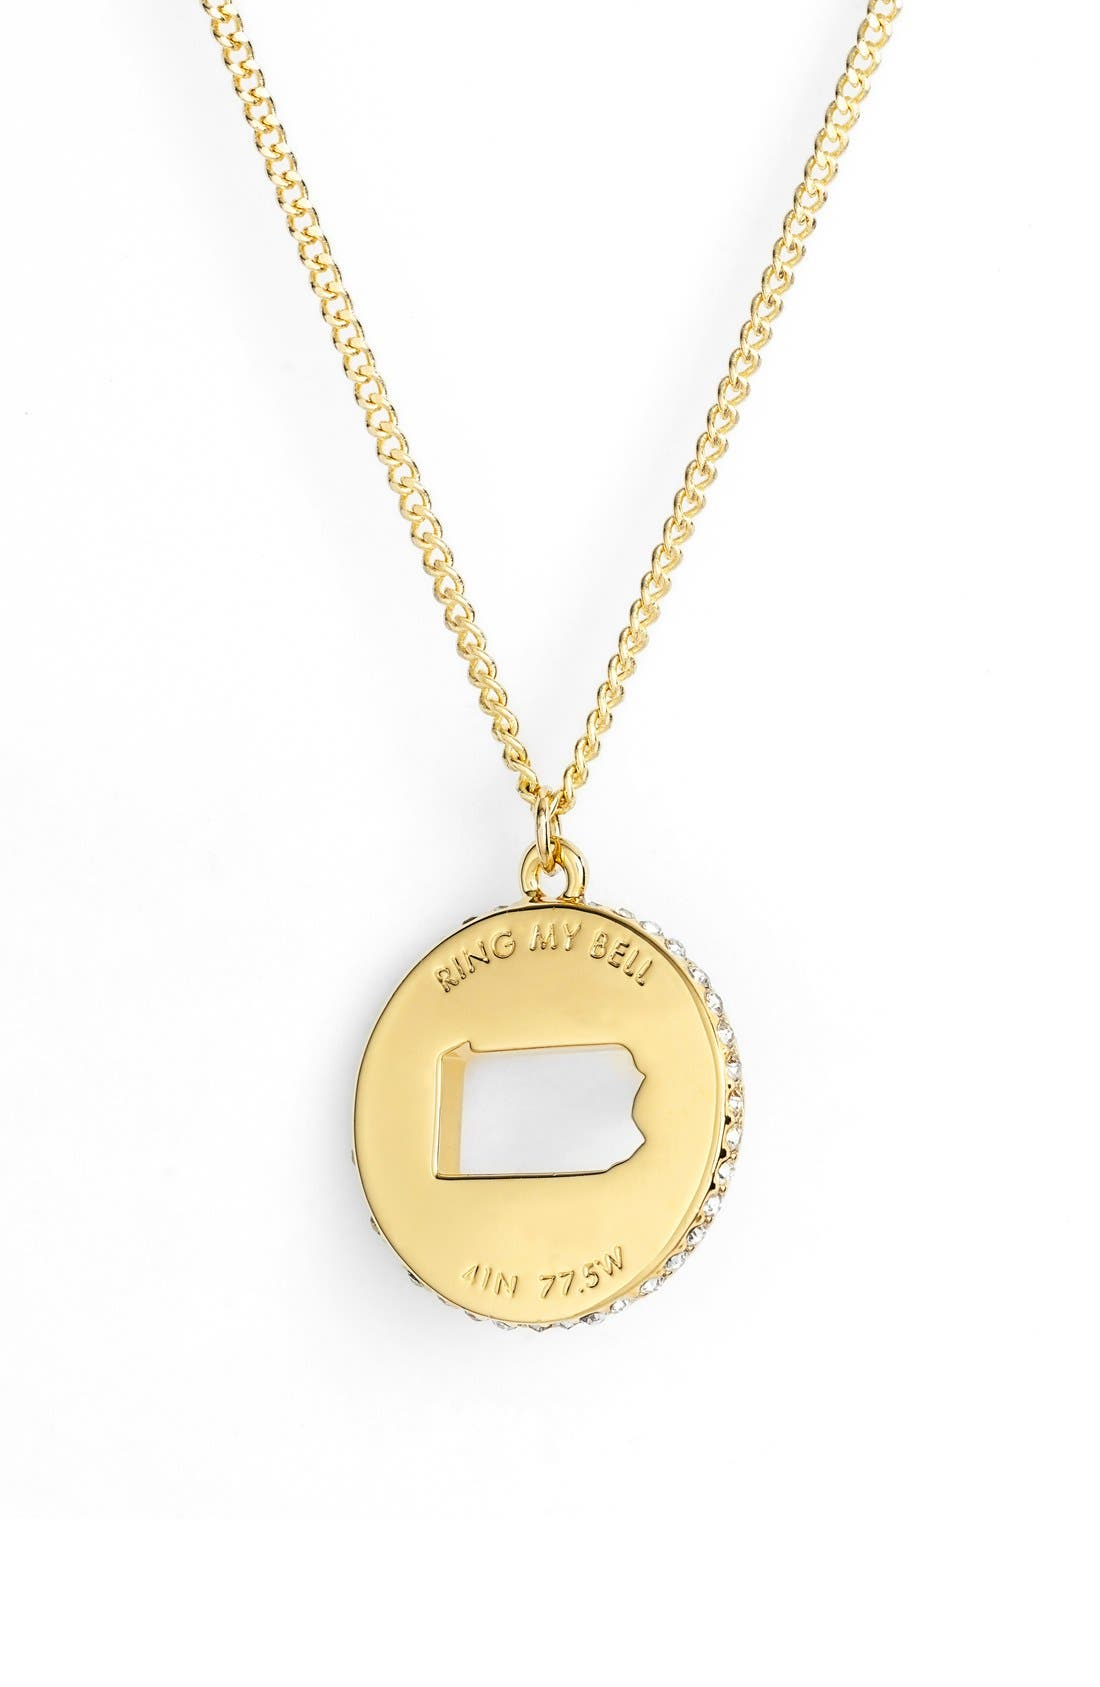 KATE SPADE NEW YORK state of mind pendant necklace